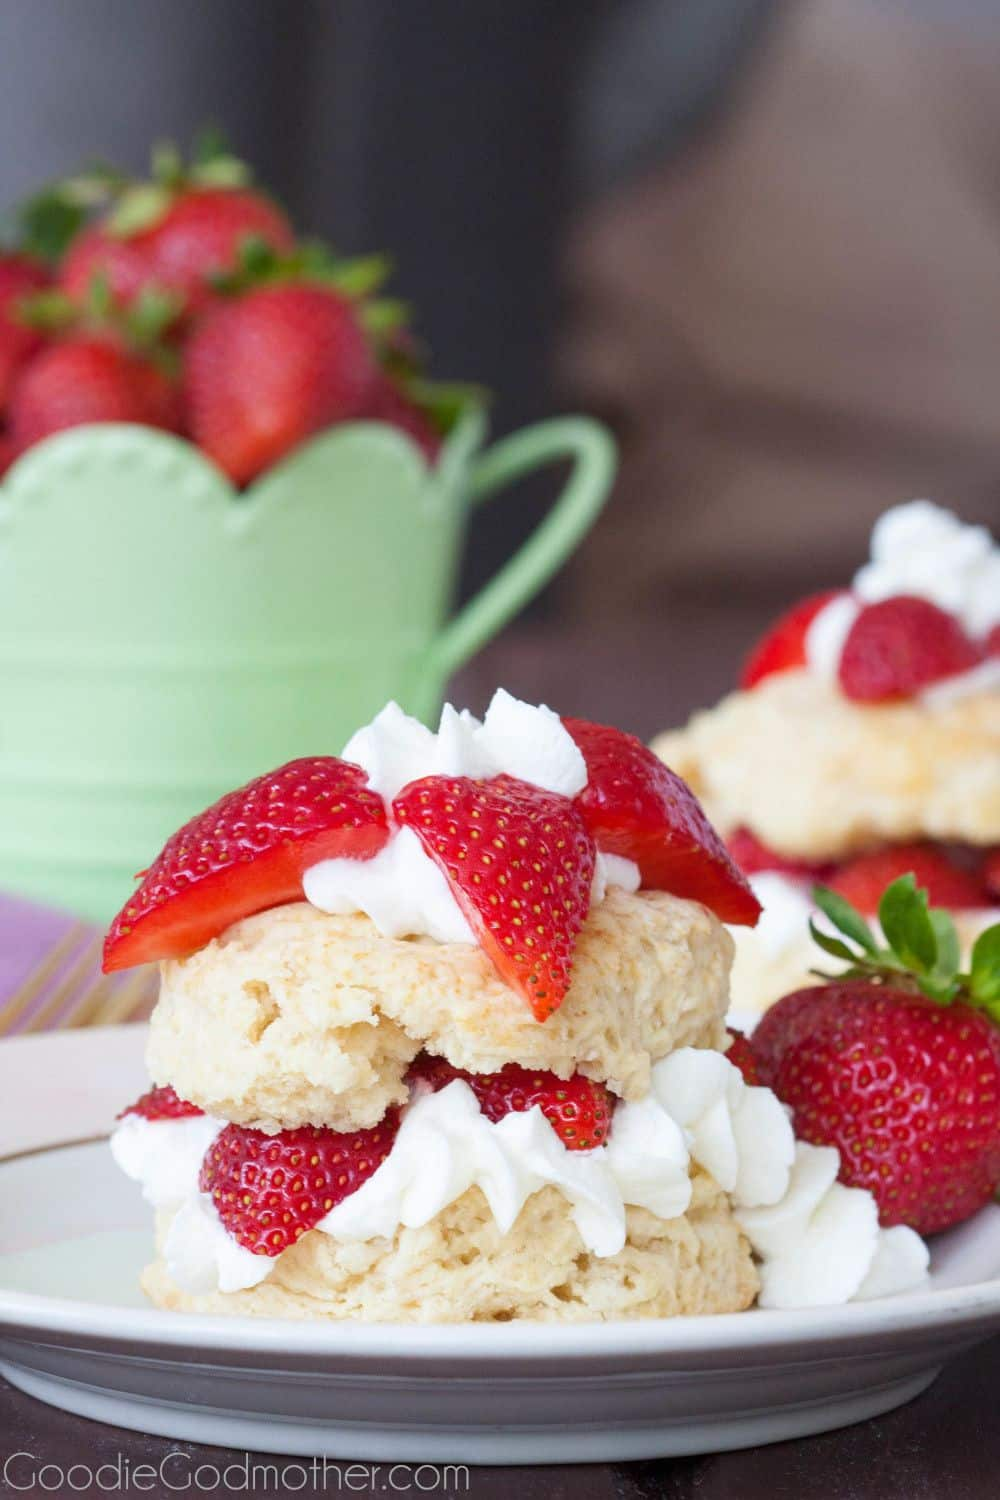 Easy strawberry shortcake recipe for summer! Perfectly textured shortcake layered with homemade whipped cream and bright red strawberries!